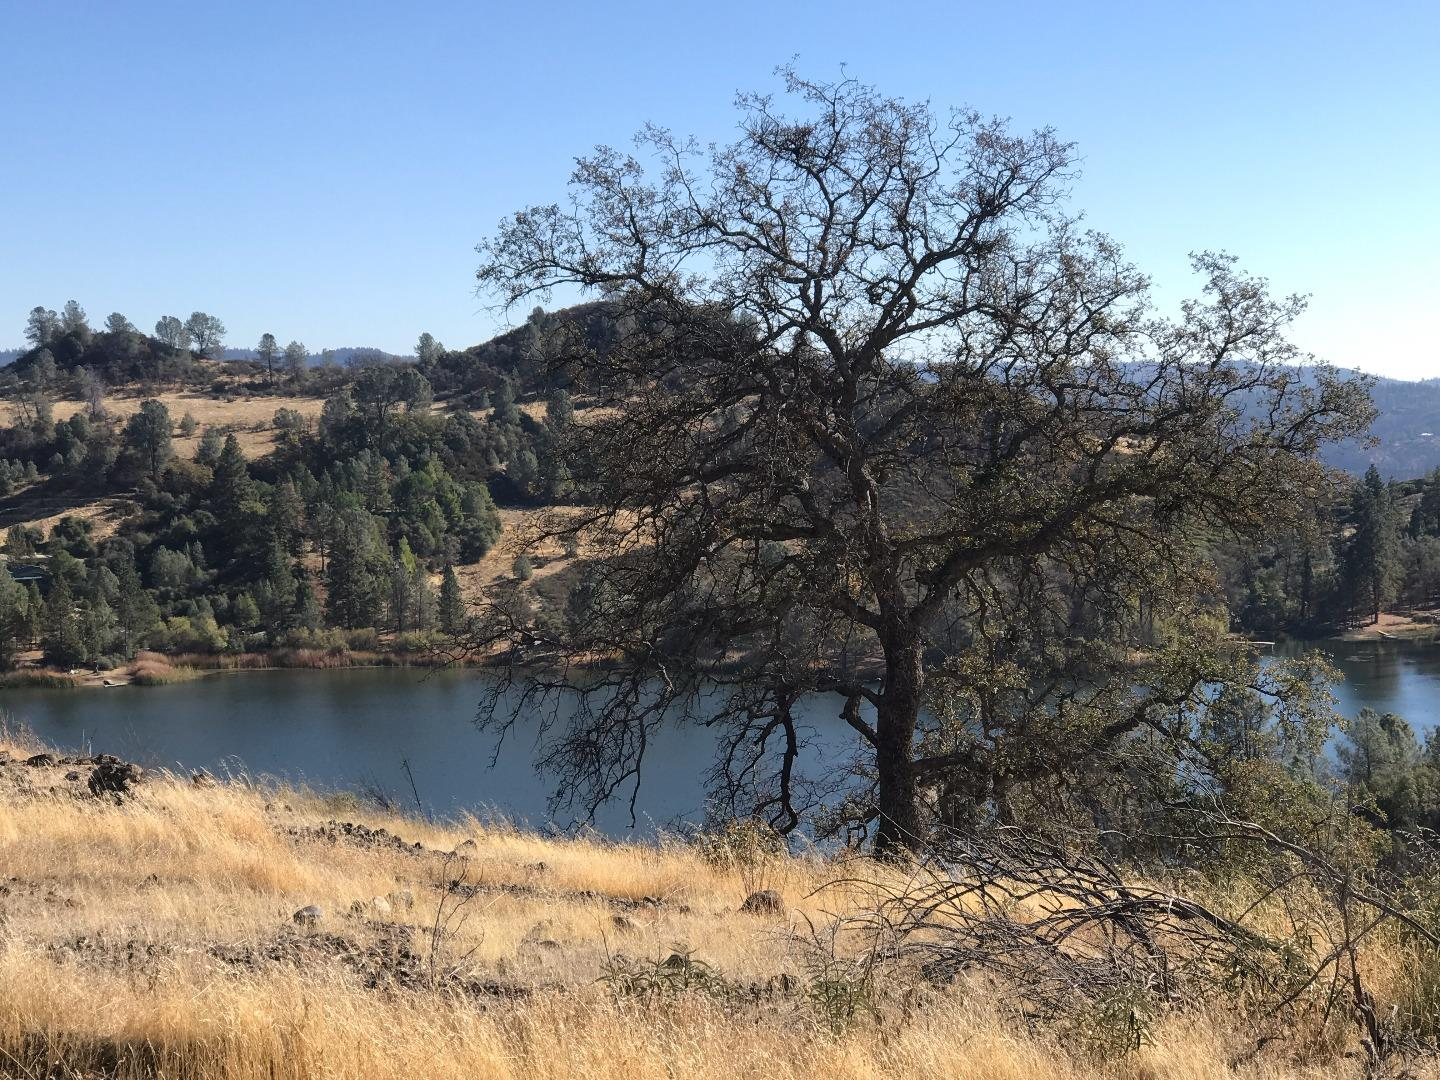 Land for Sale at 6930 Eagle View Drive 6930 Eagle View Drive Mountain Ranch, California 95246 United States